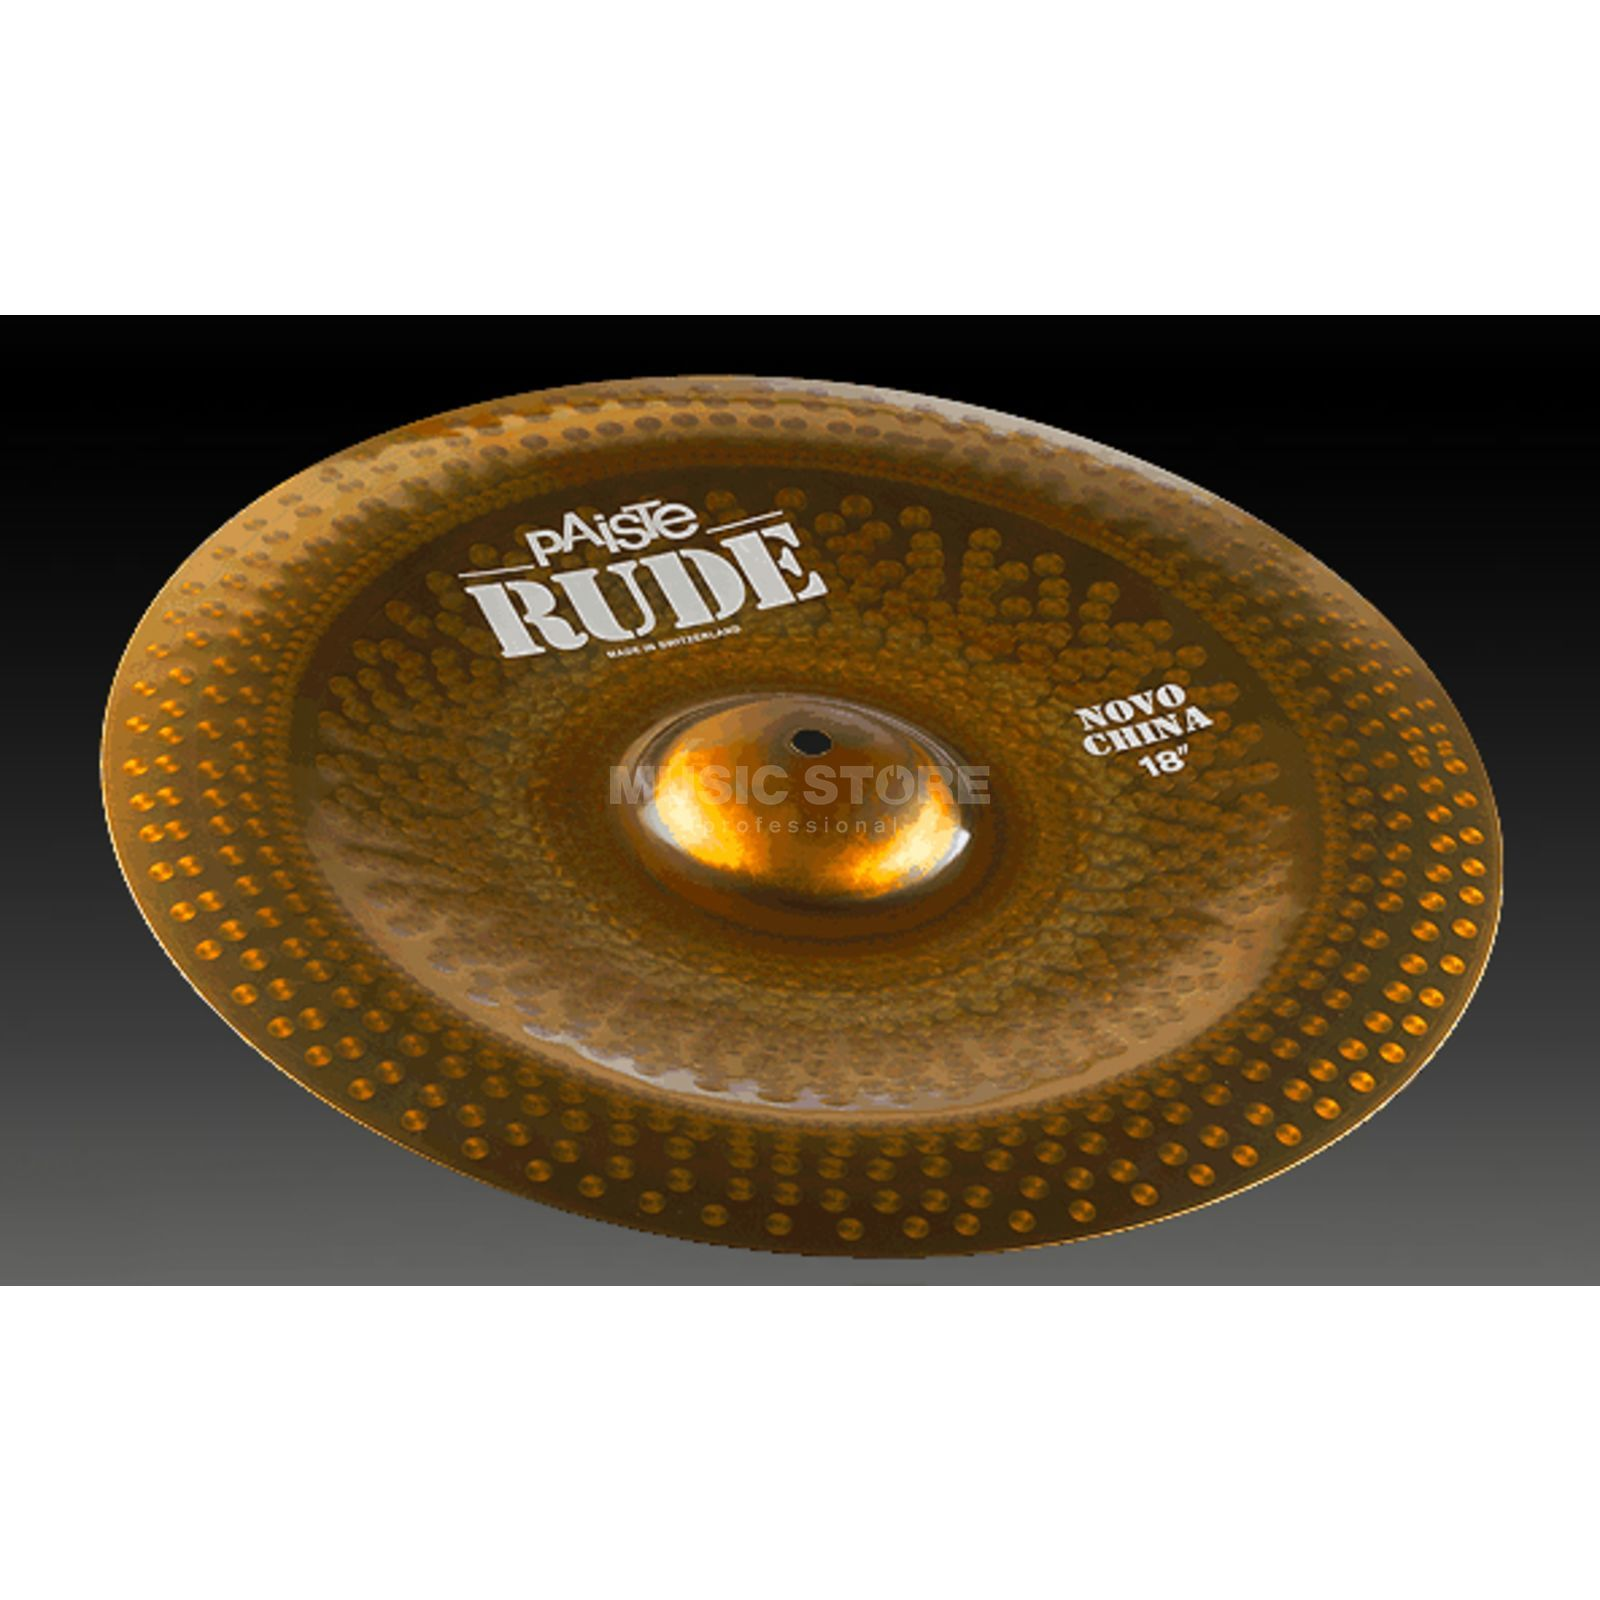 "Paiste Rude Novo China 20""  Produktbild"